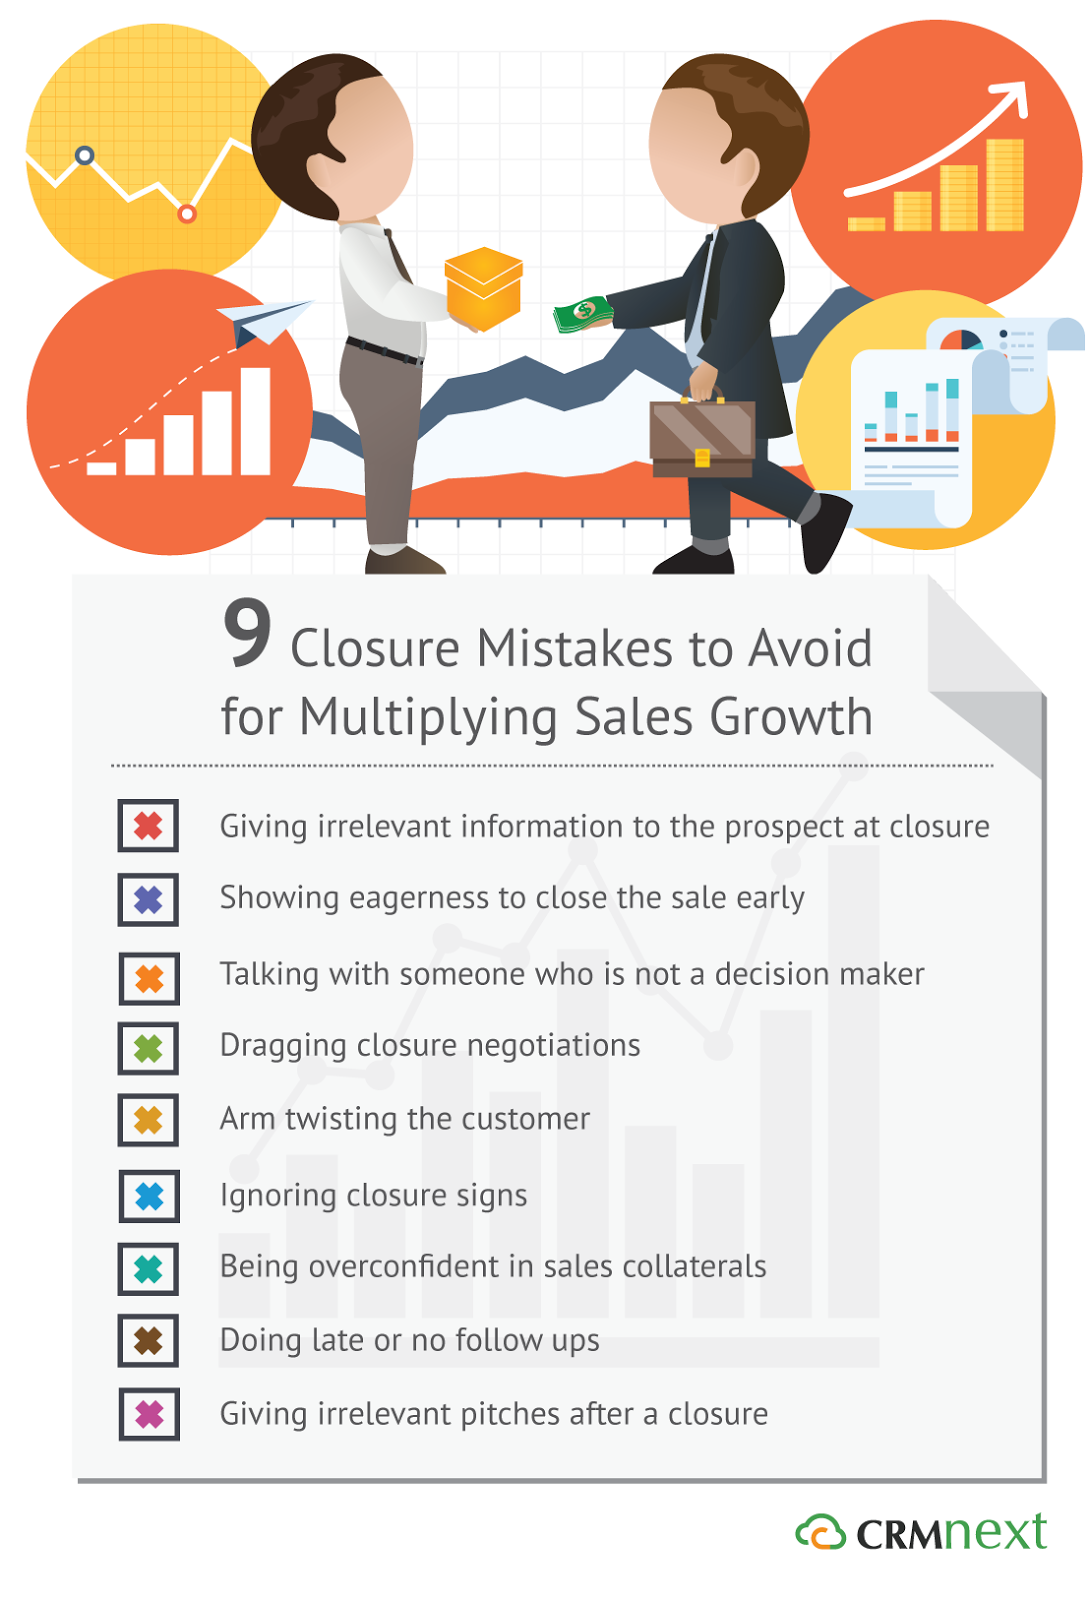 Multiply Sales Growth: 9 Closure Mistakes to Avoid